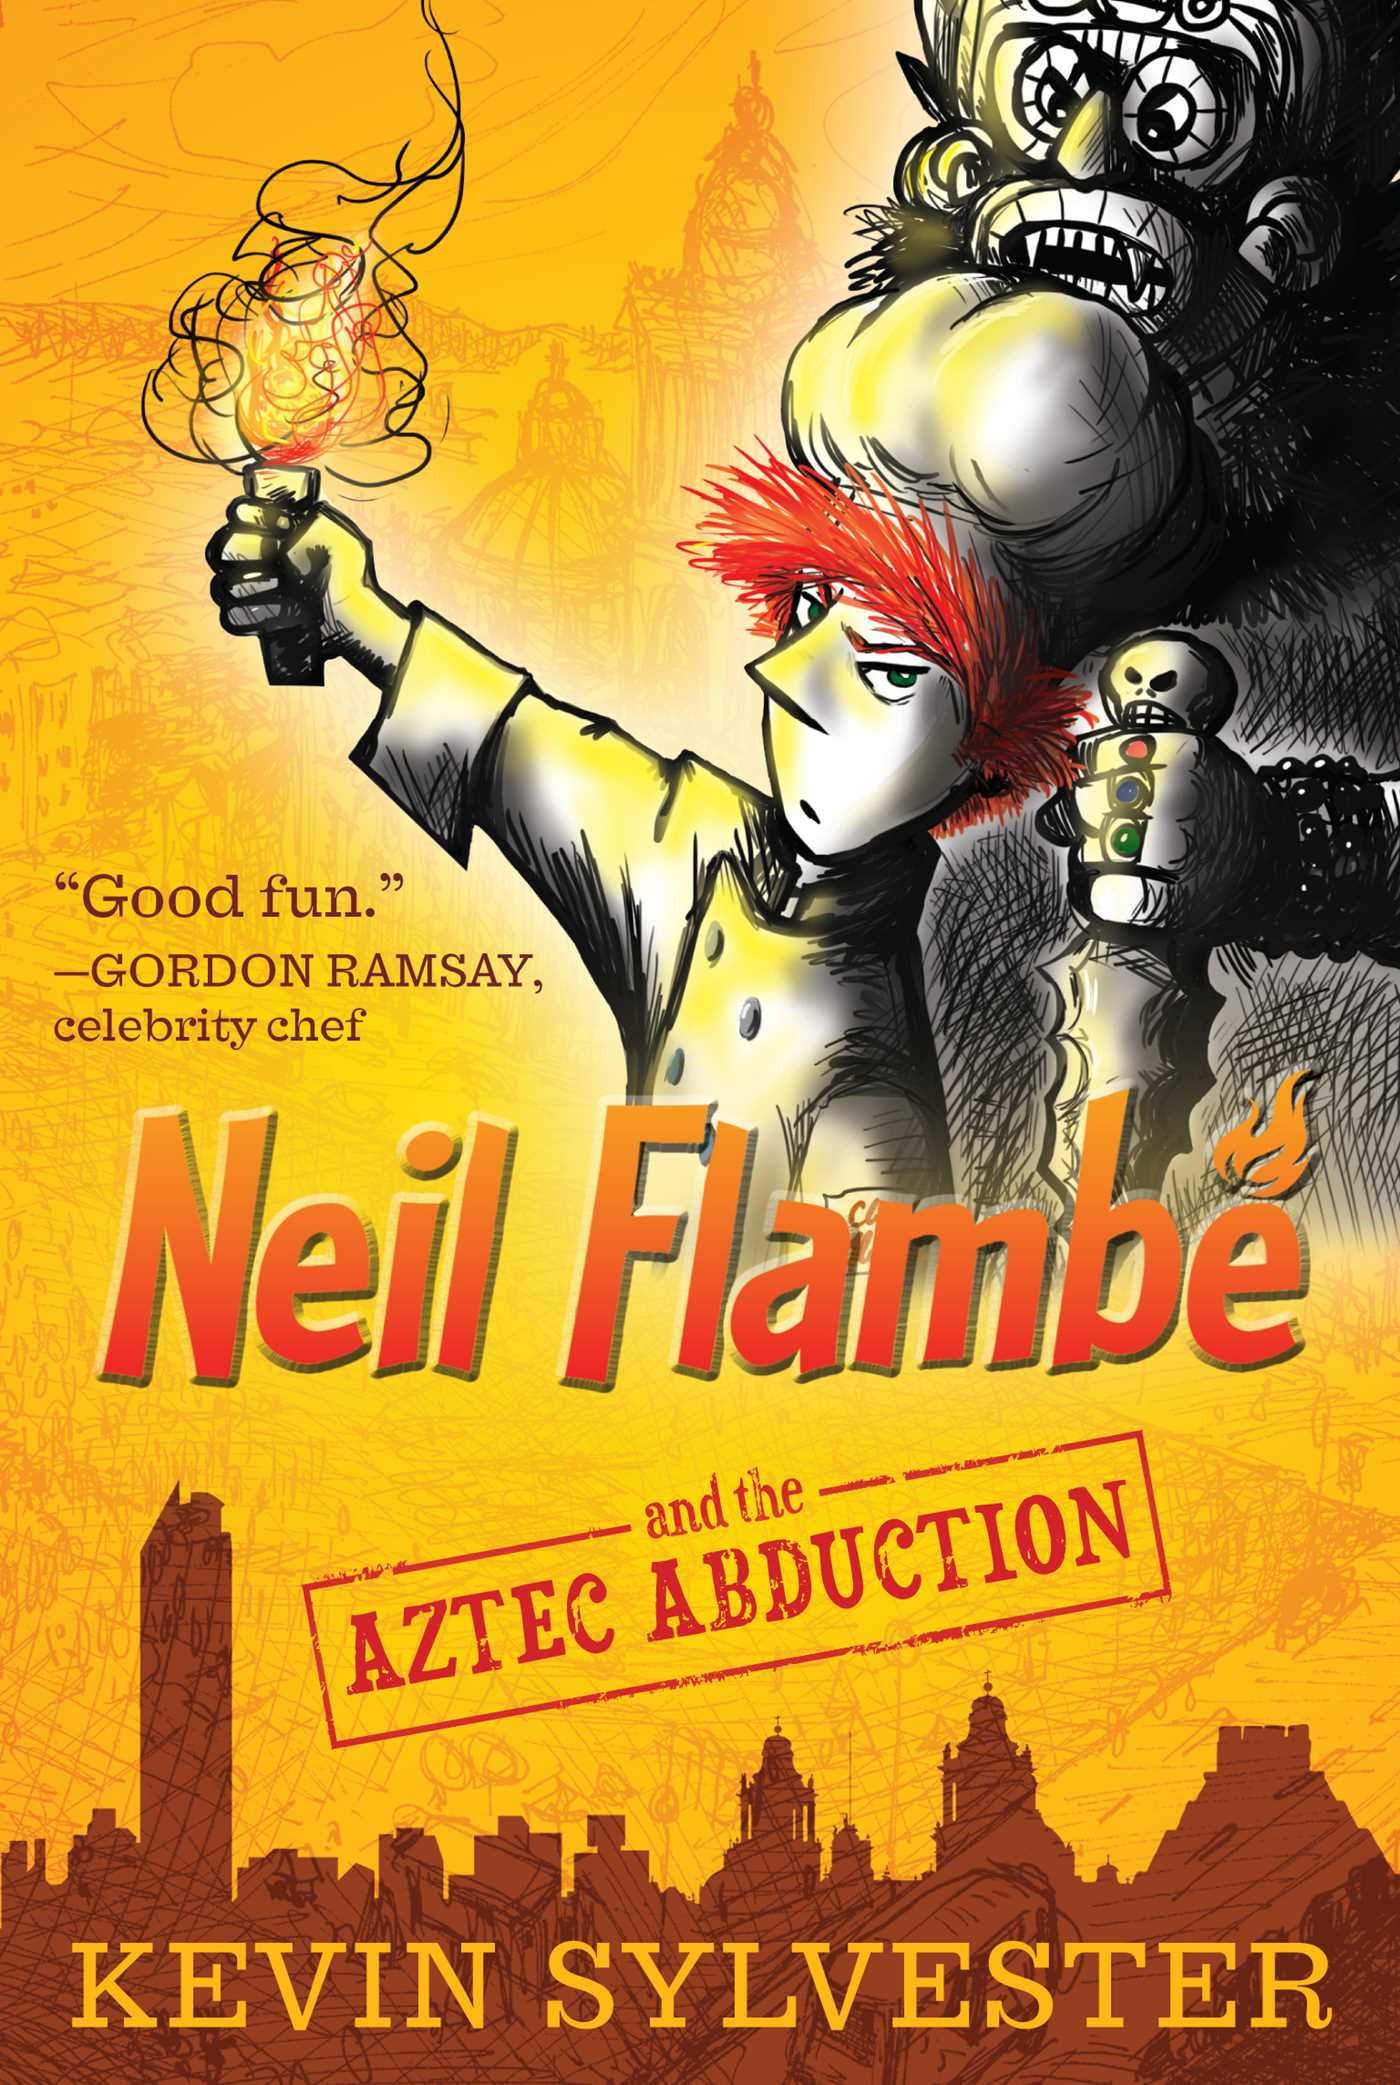 Neil flambe and the aztec abduction 9781442446090 hr